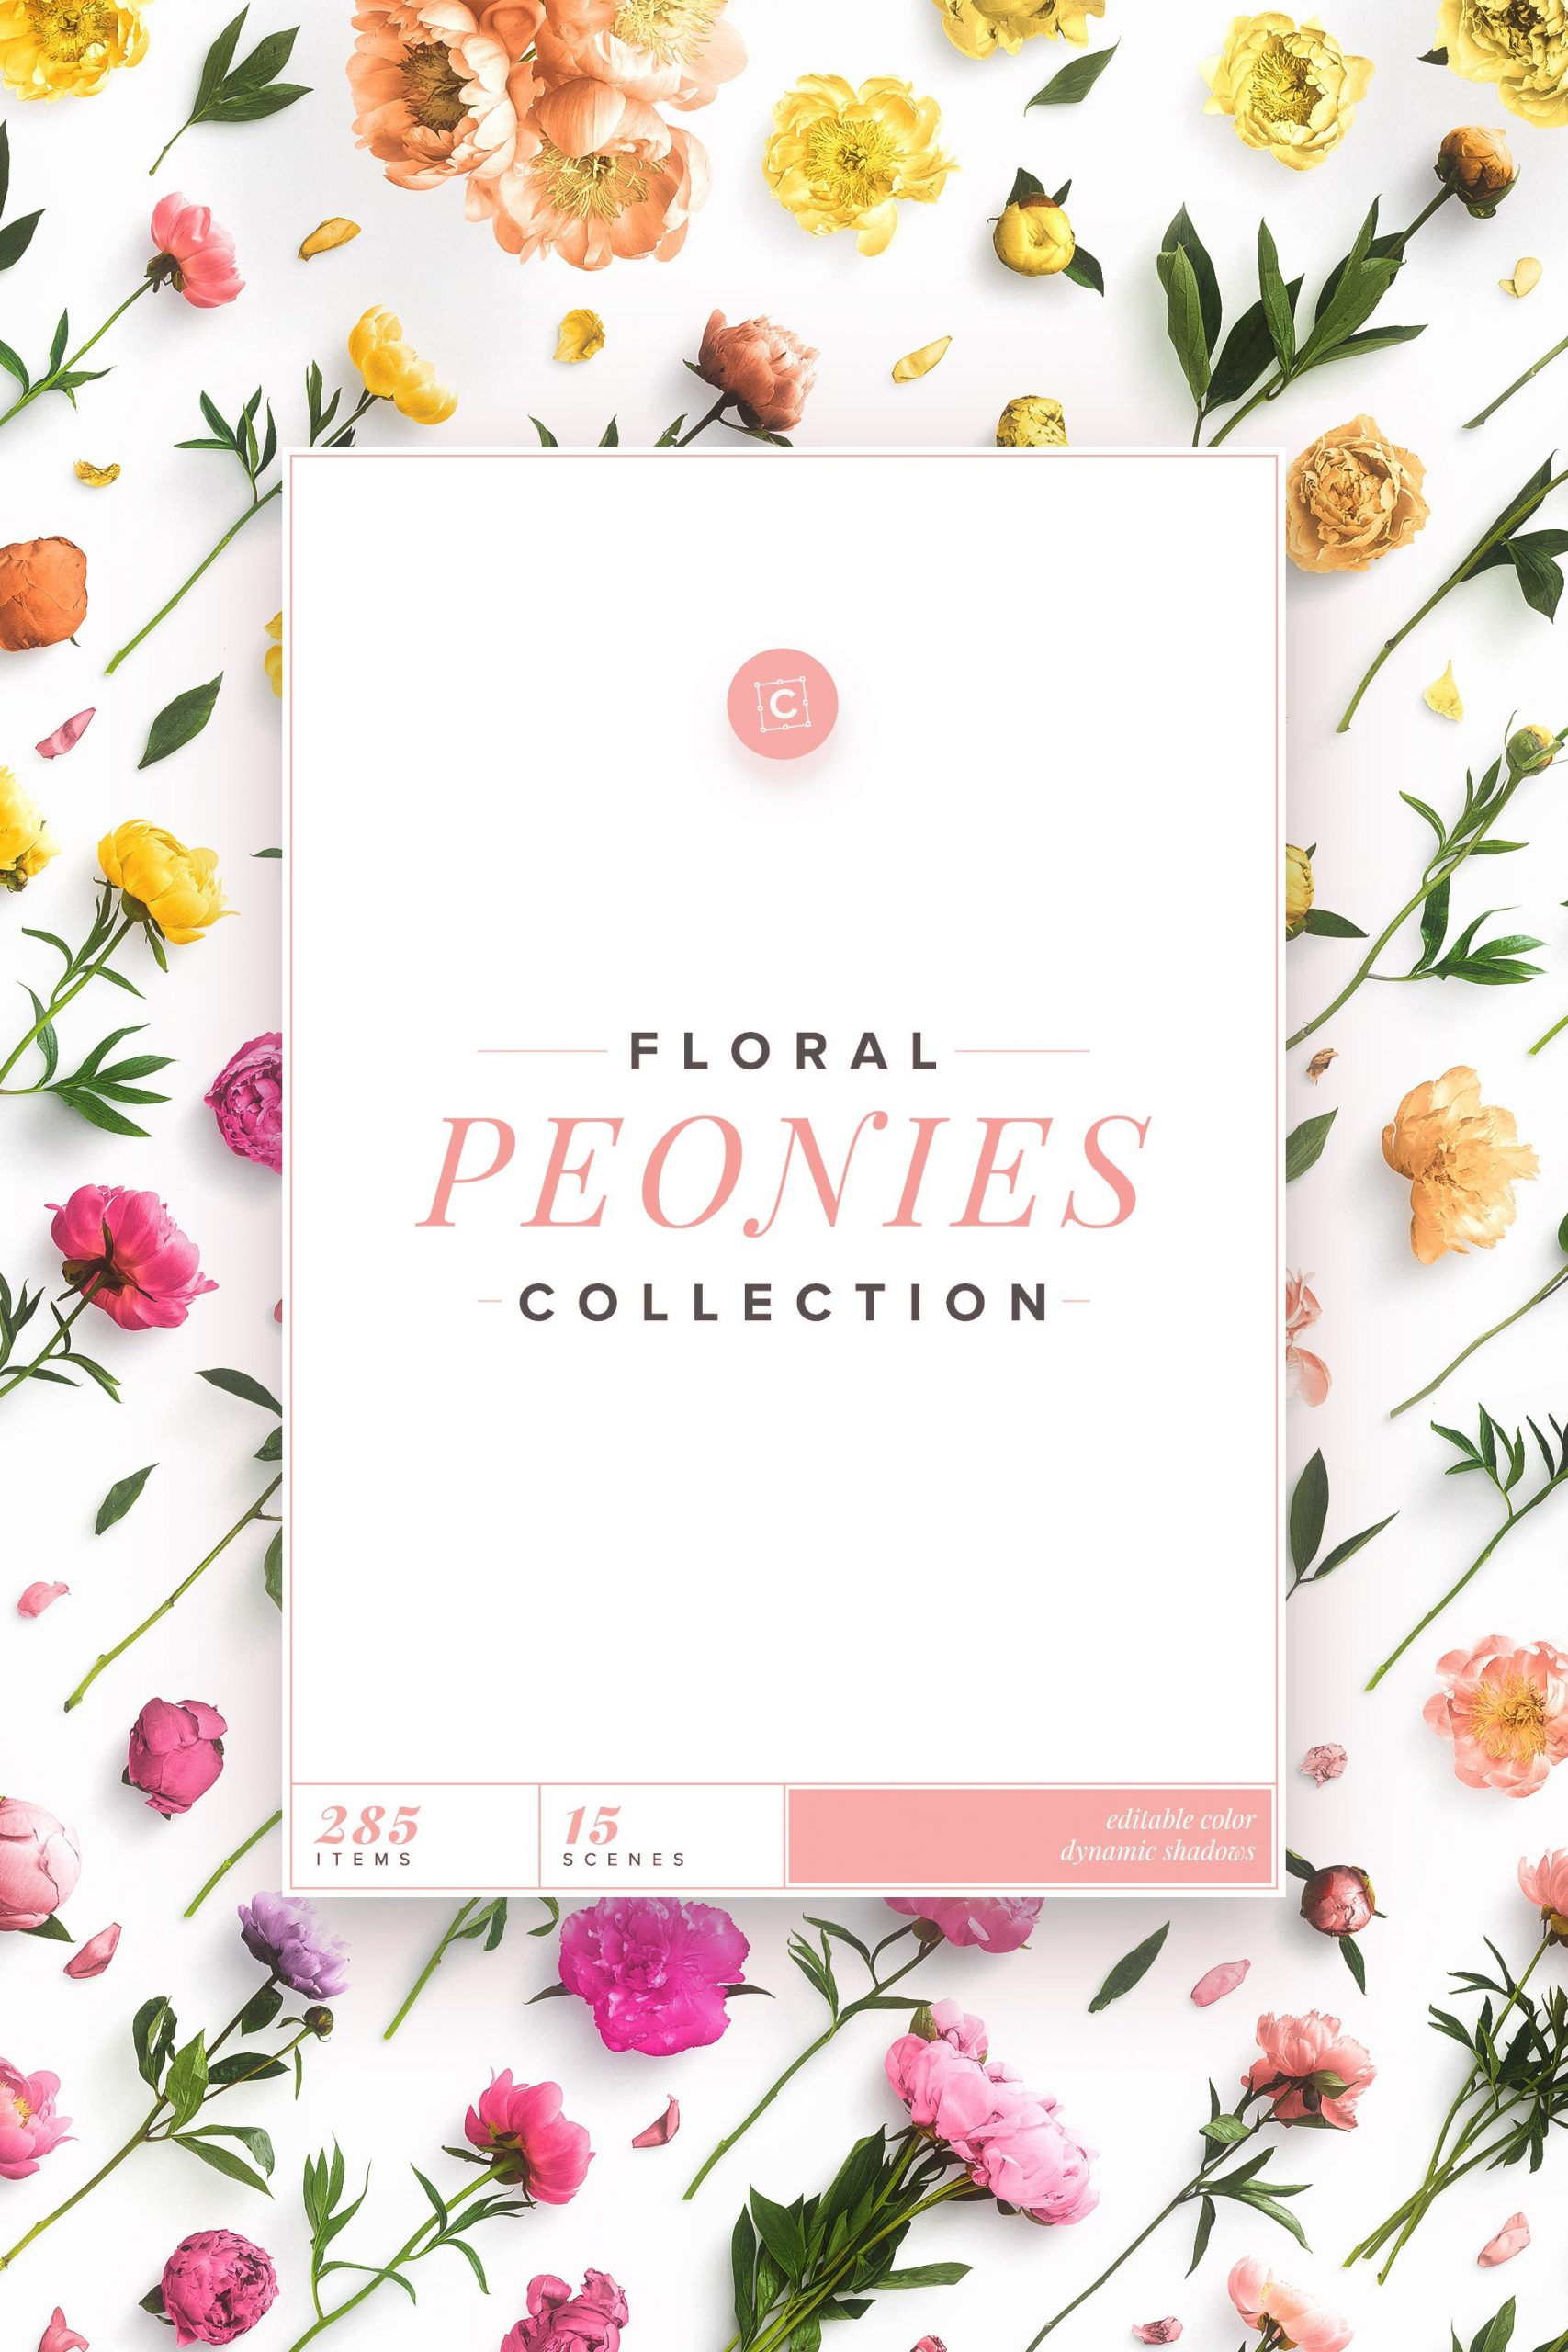 cover 2x3 floral collection peonies customscene